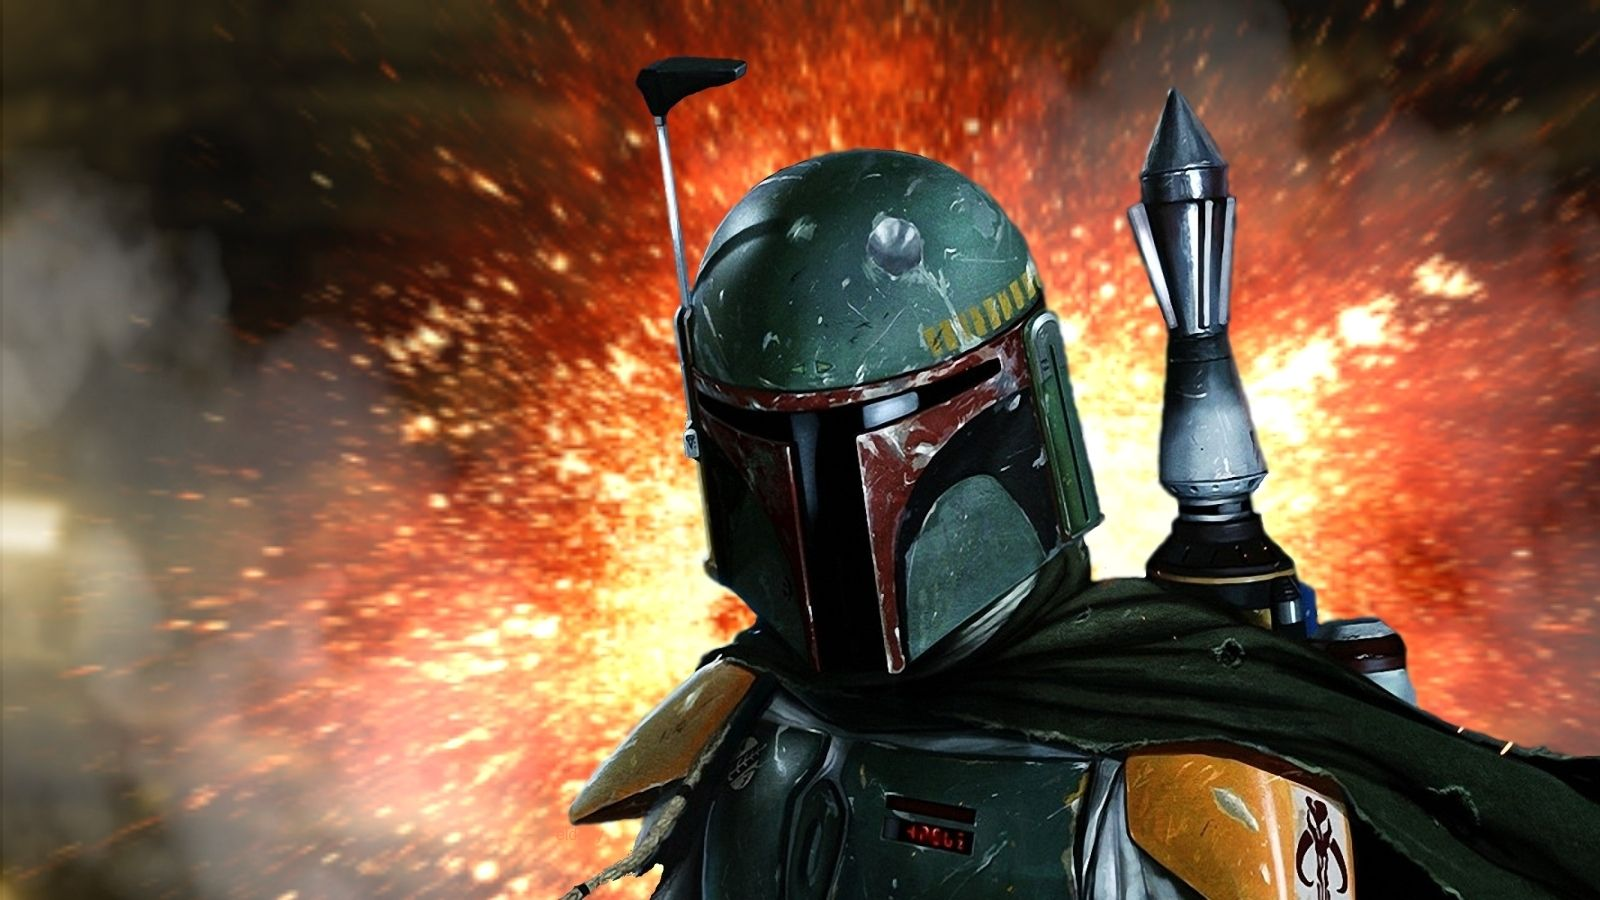 Boba Fett Wallpaper Hd Posted By Ethan Anderson